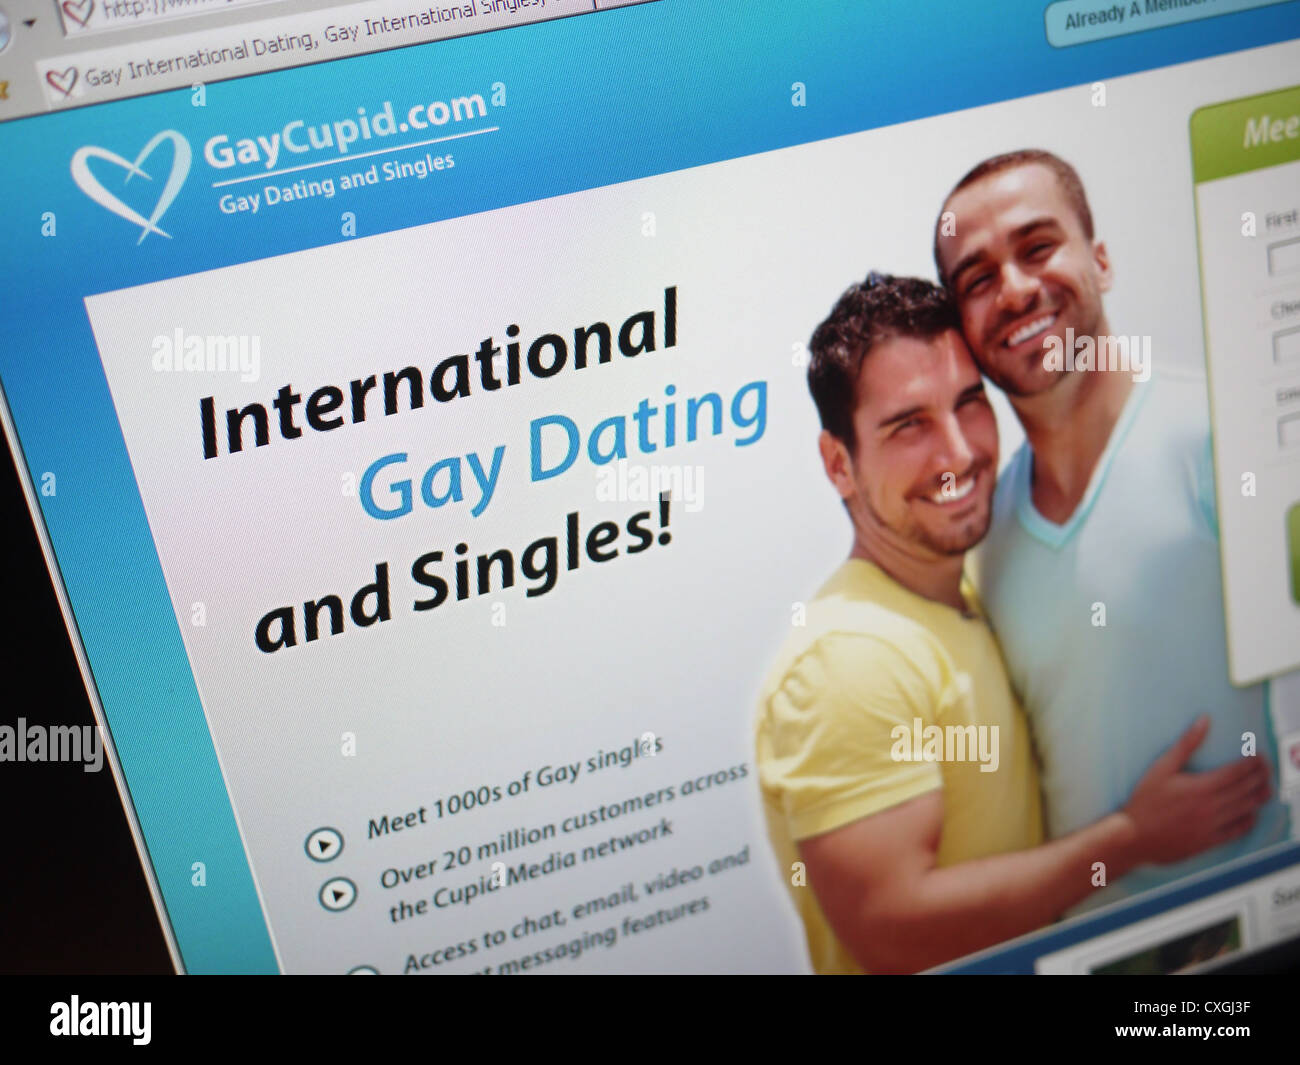 gay dating web site